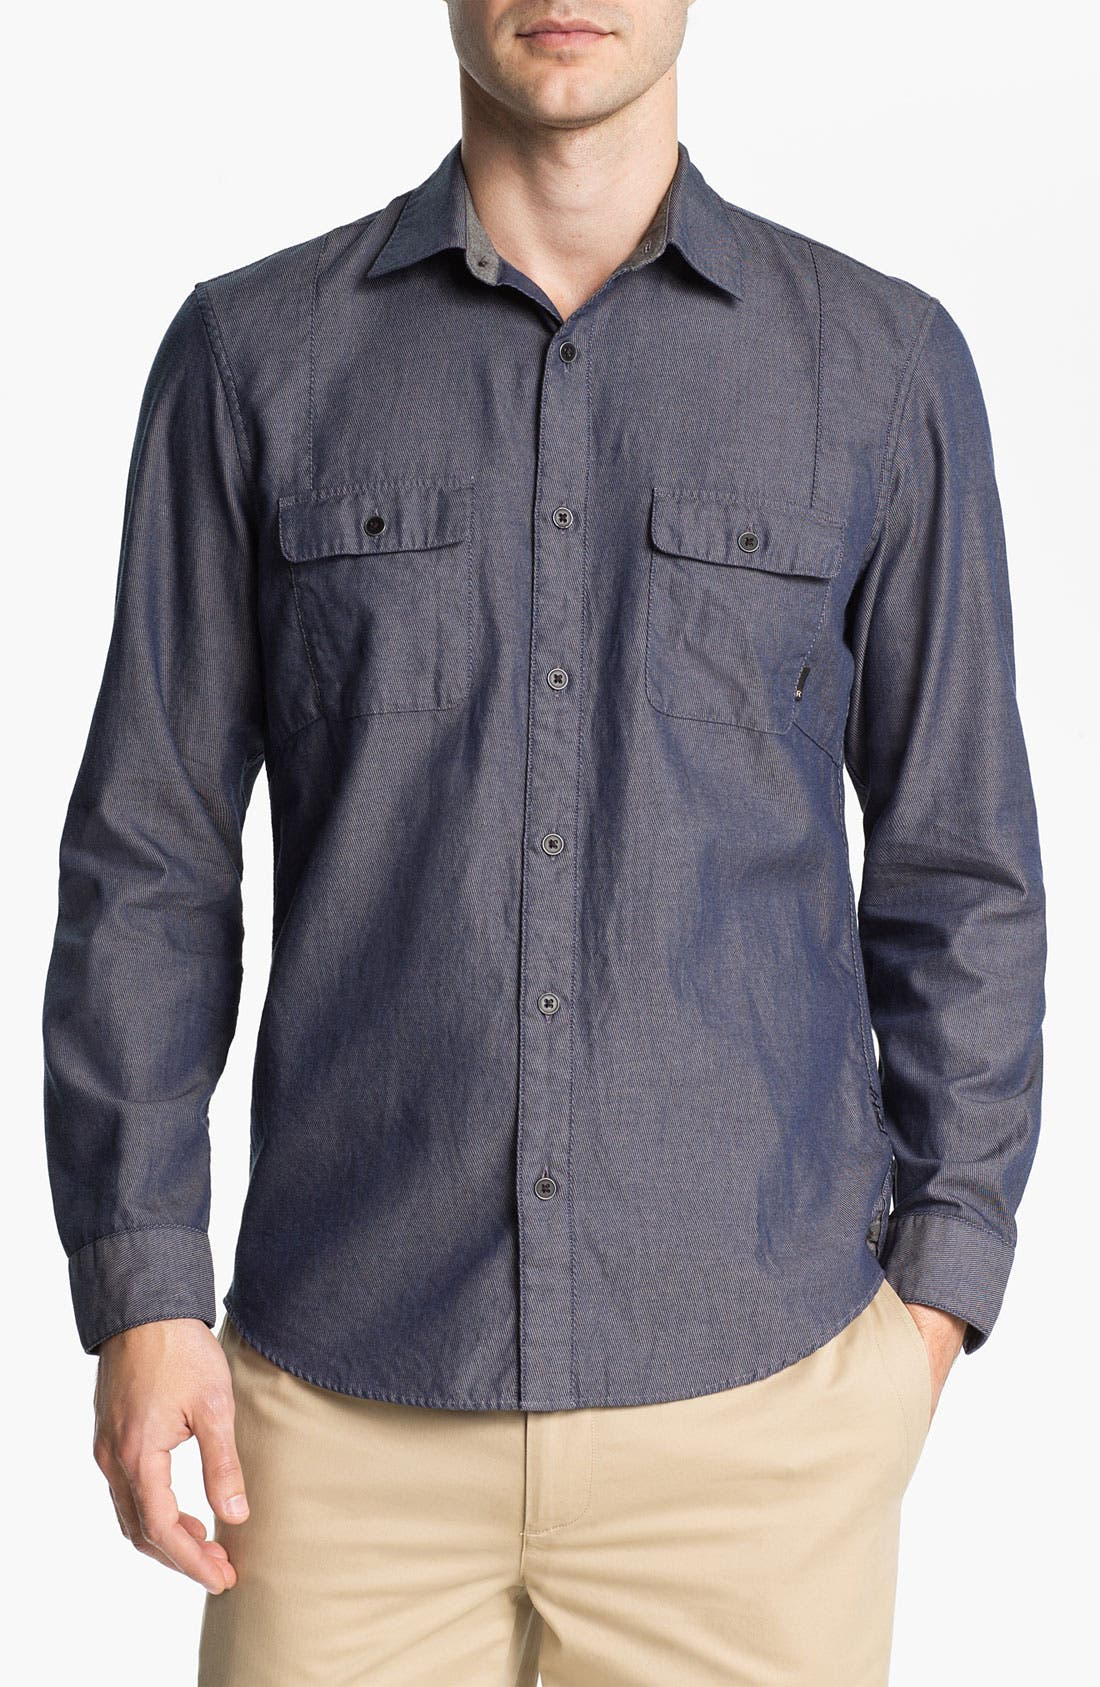 Main Image - R44 Rogan Standard Issue Twill Denim Shirt